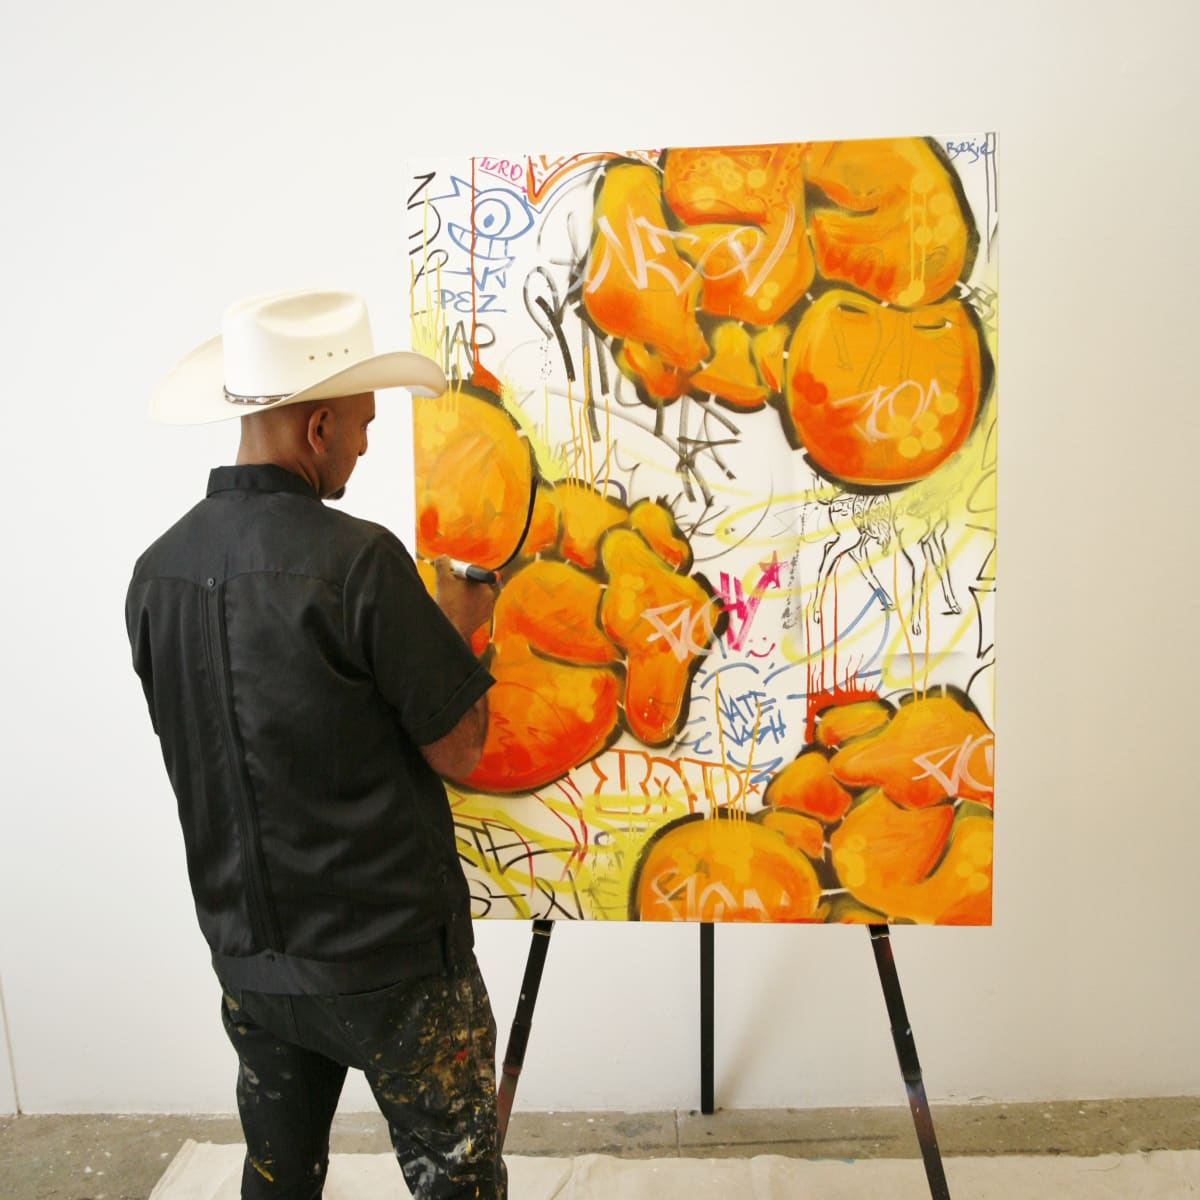 GONZO247 creates a special piece of work live for attendees using his signature style at the Art on the Avenue Preview party.